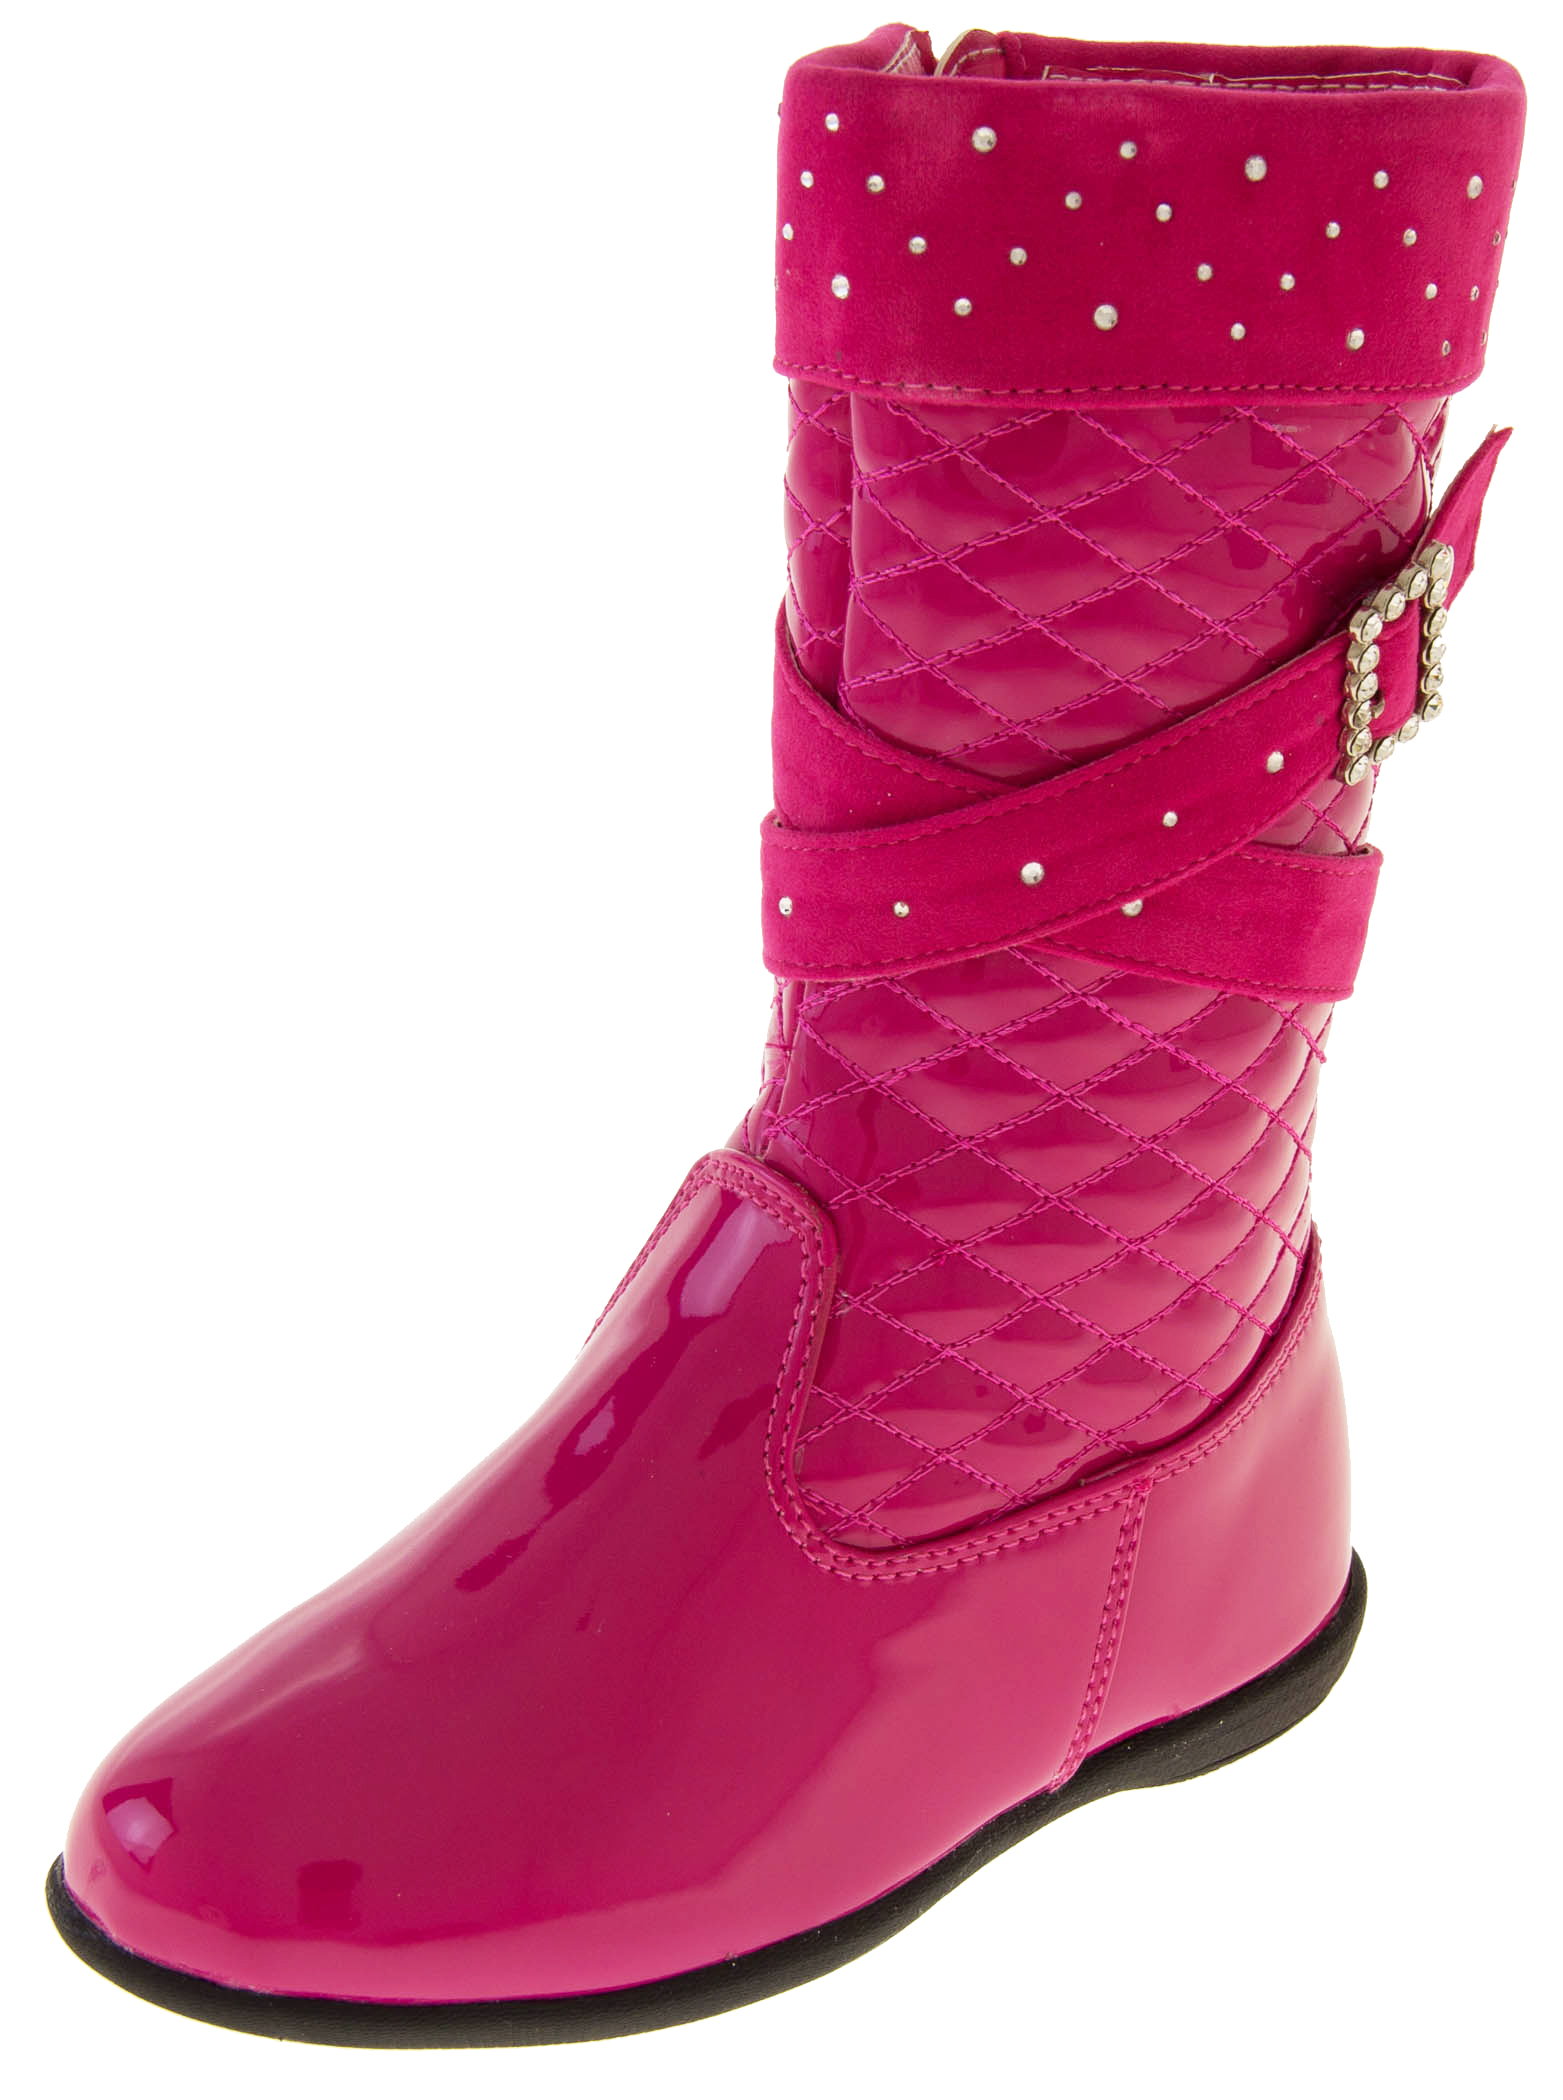 3acd2b54c6 Girls Disco Party Low Heel Fashion Boots